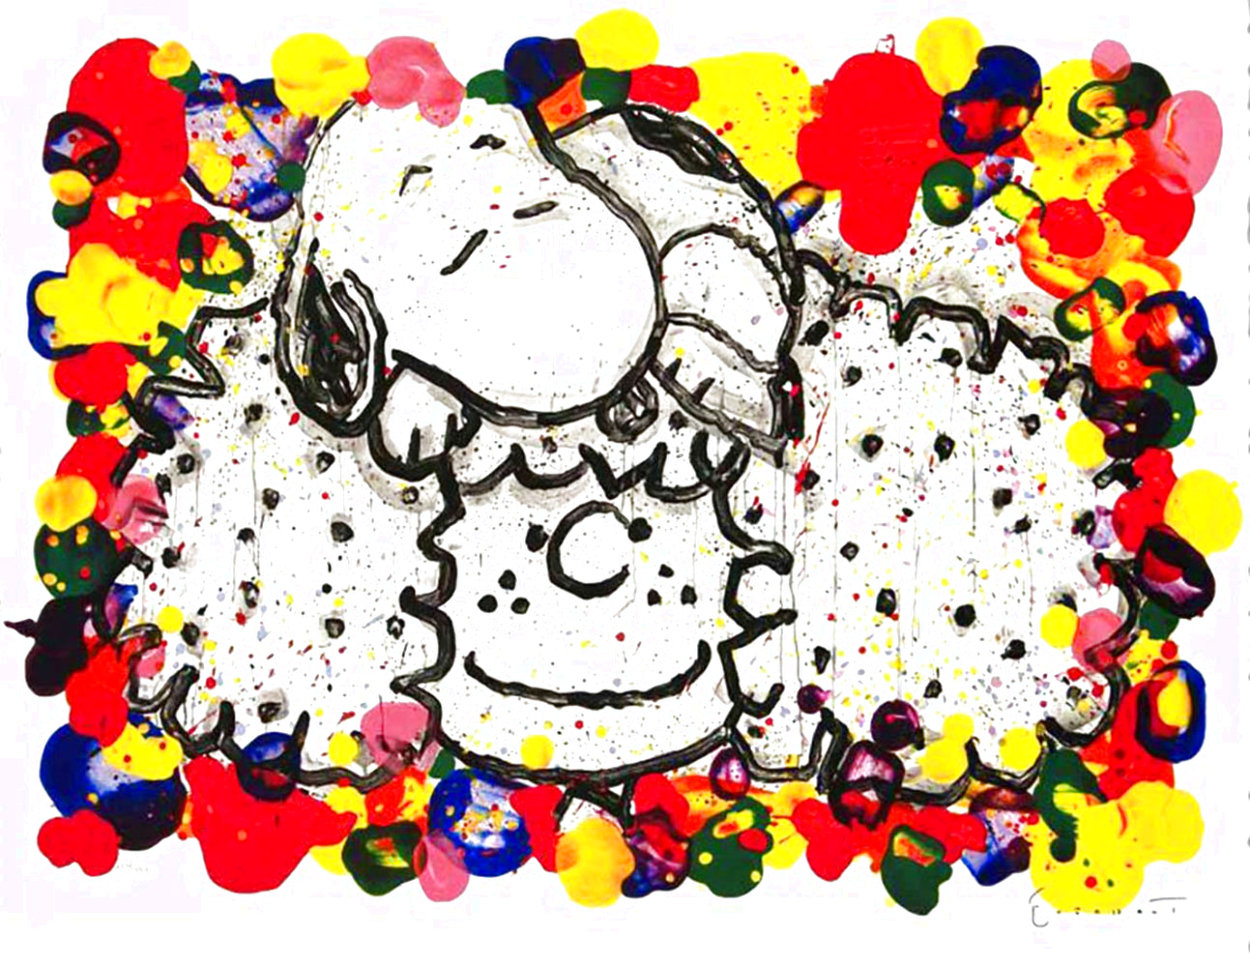 Why I Like Big Hair 2010 Limited Edition Print by Tom Everhart